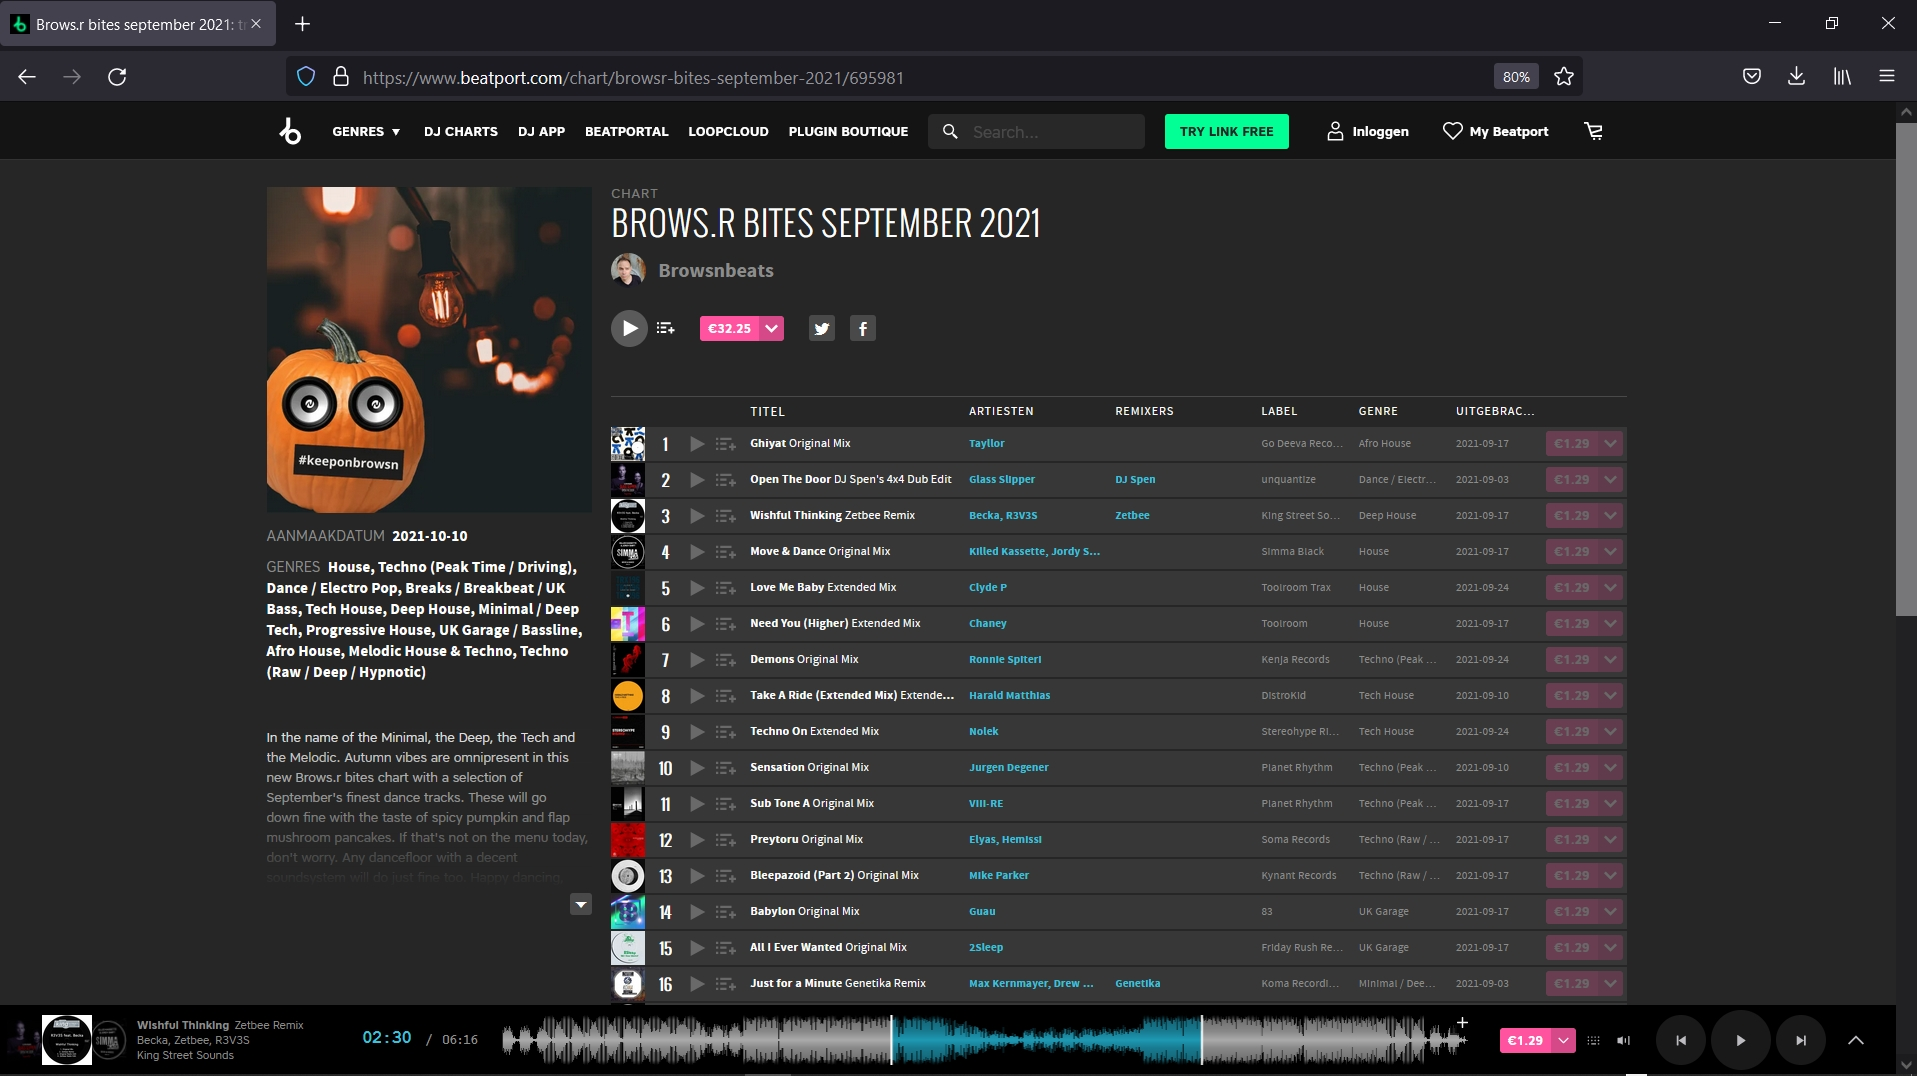 overview of browsr bites chart september 2021 on beatport by browsnbeats